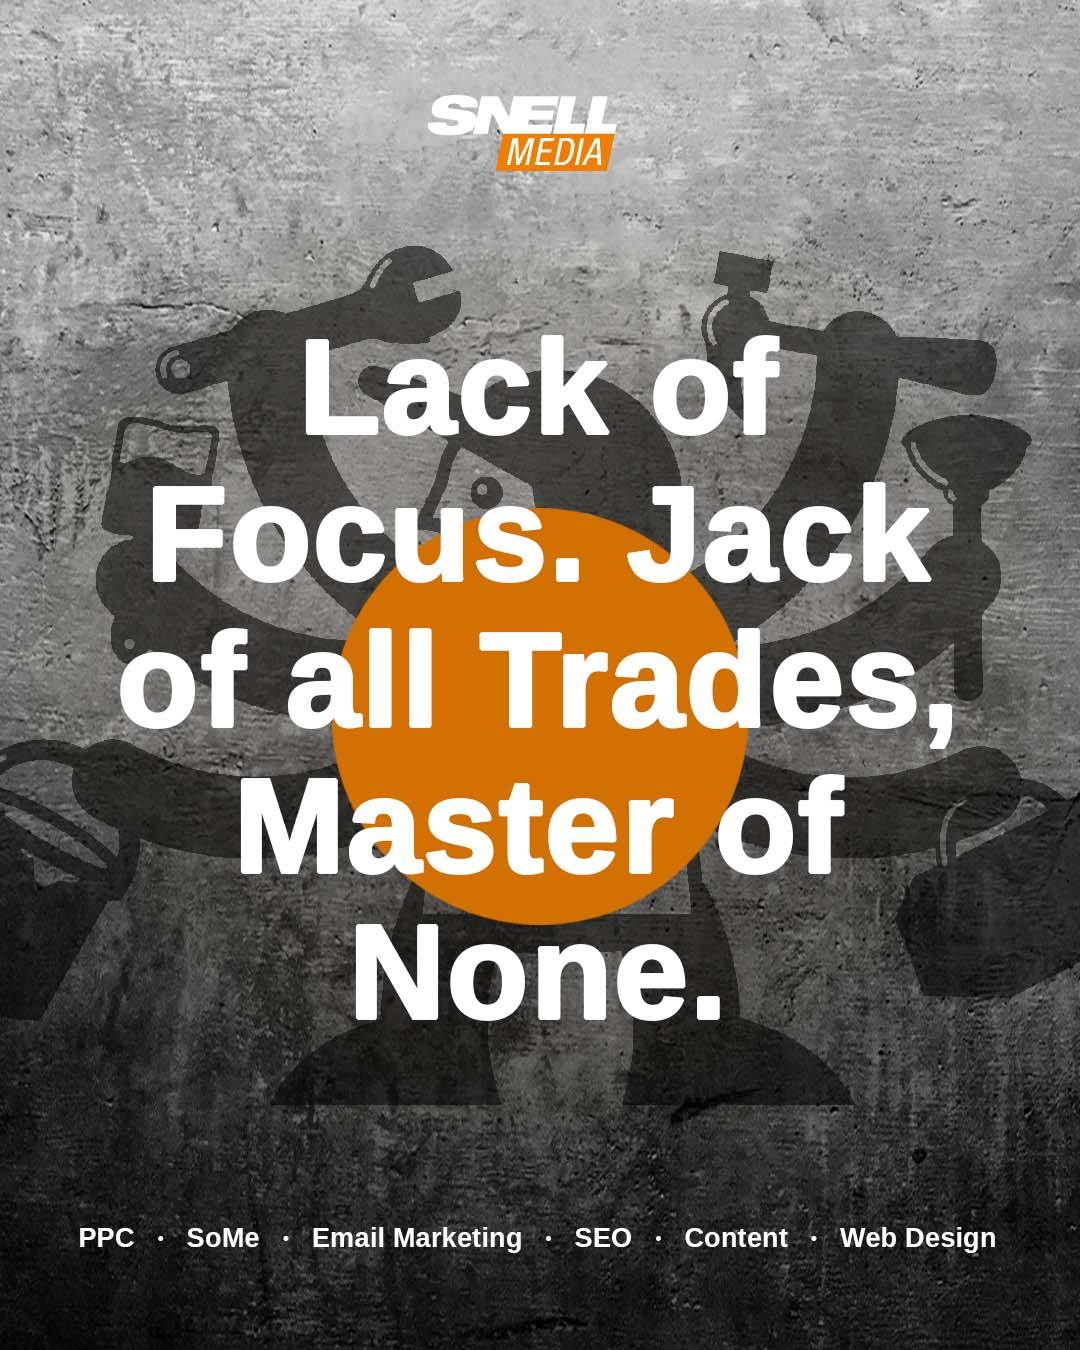 Lack of Focus. Jack of all Trades, Master of None.